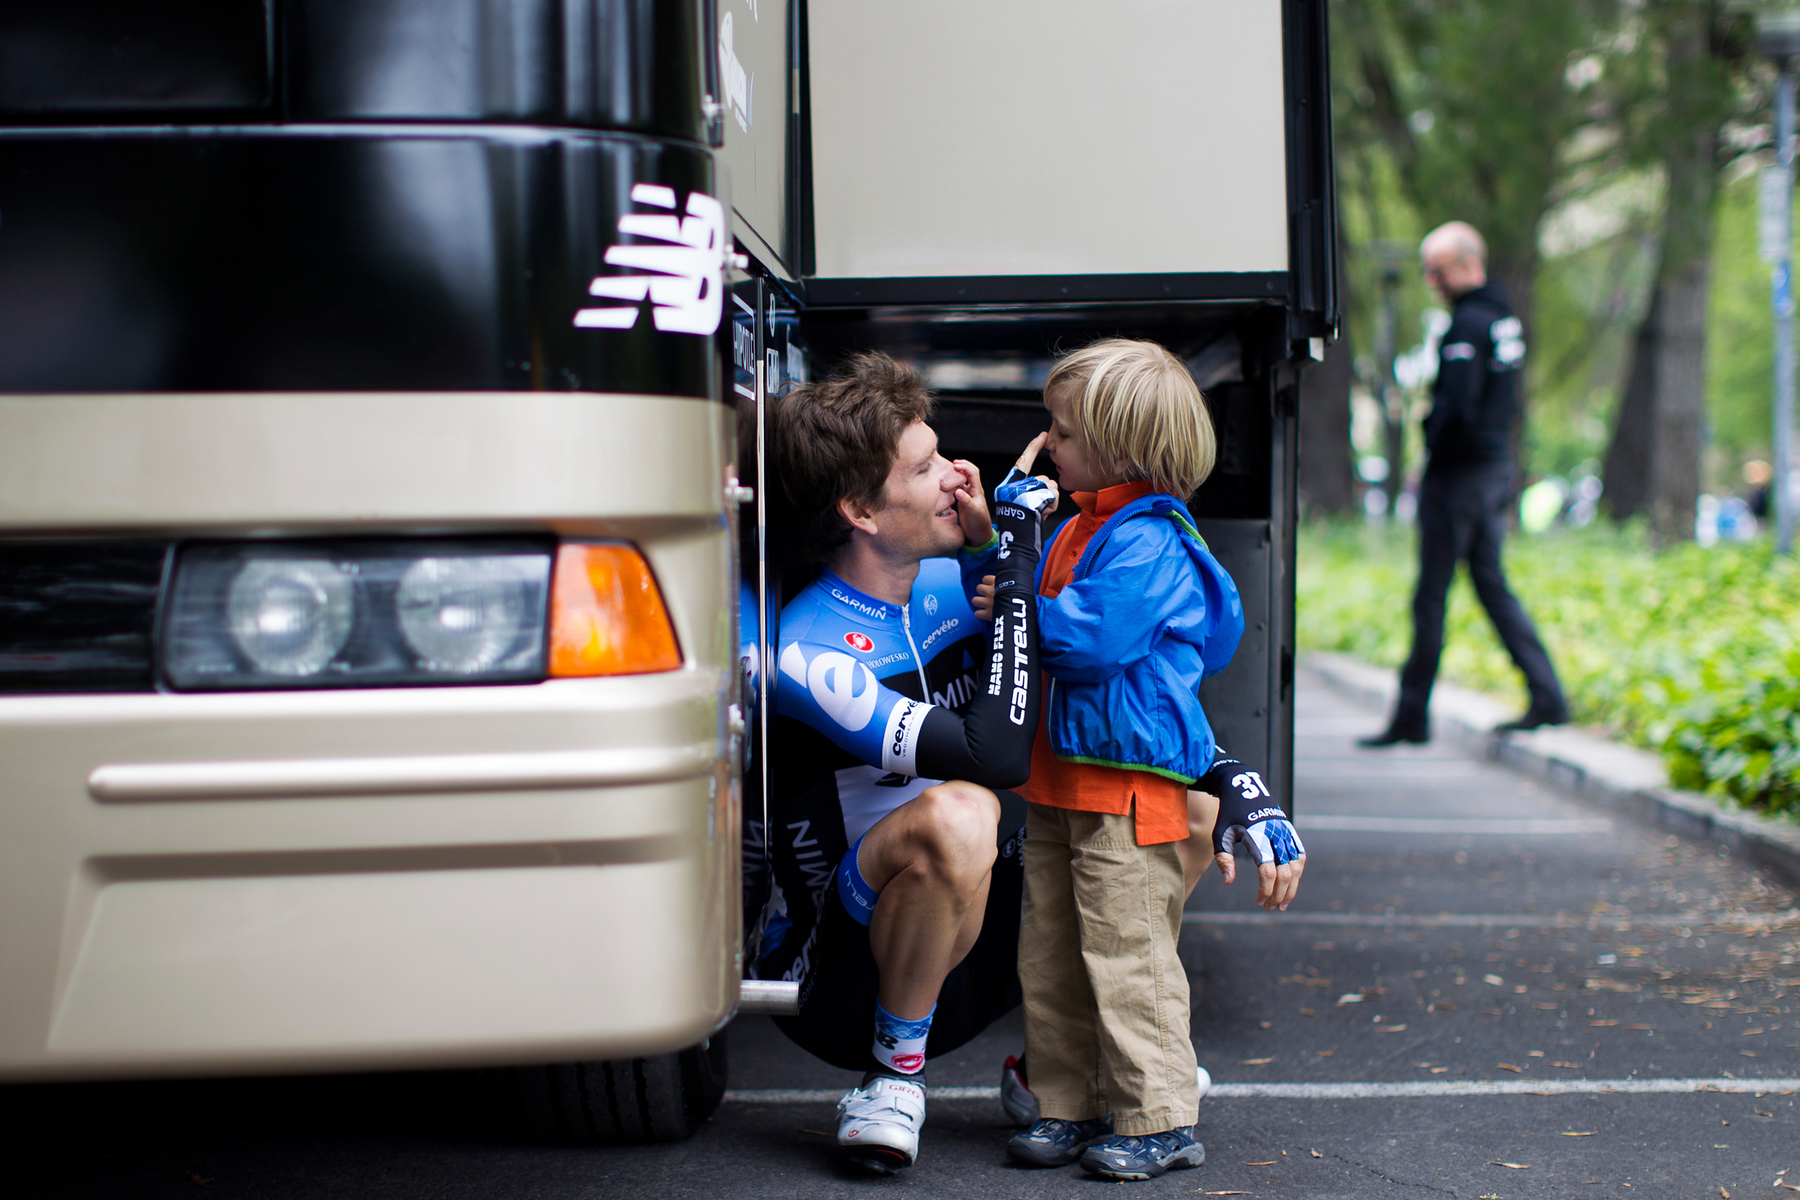 Team Garmin-Barracuda's Dave Zabriskie shares a moment with his son behind the team bus prior to stage one of the Amgen Tour of California in Santa Rosa, Calif. on Sunday, May 13, 2012.